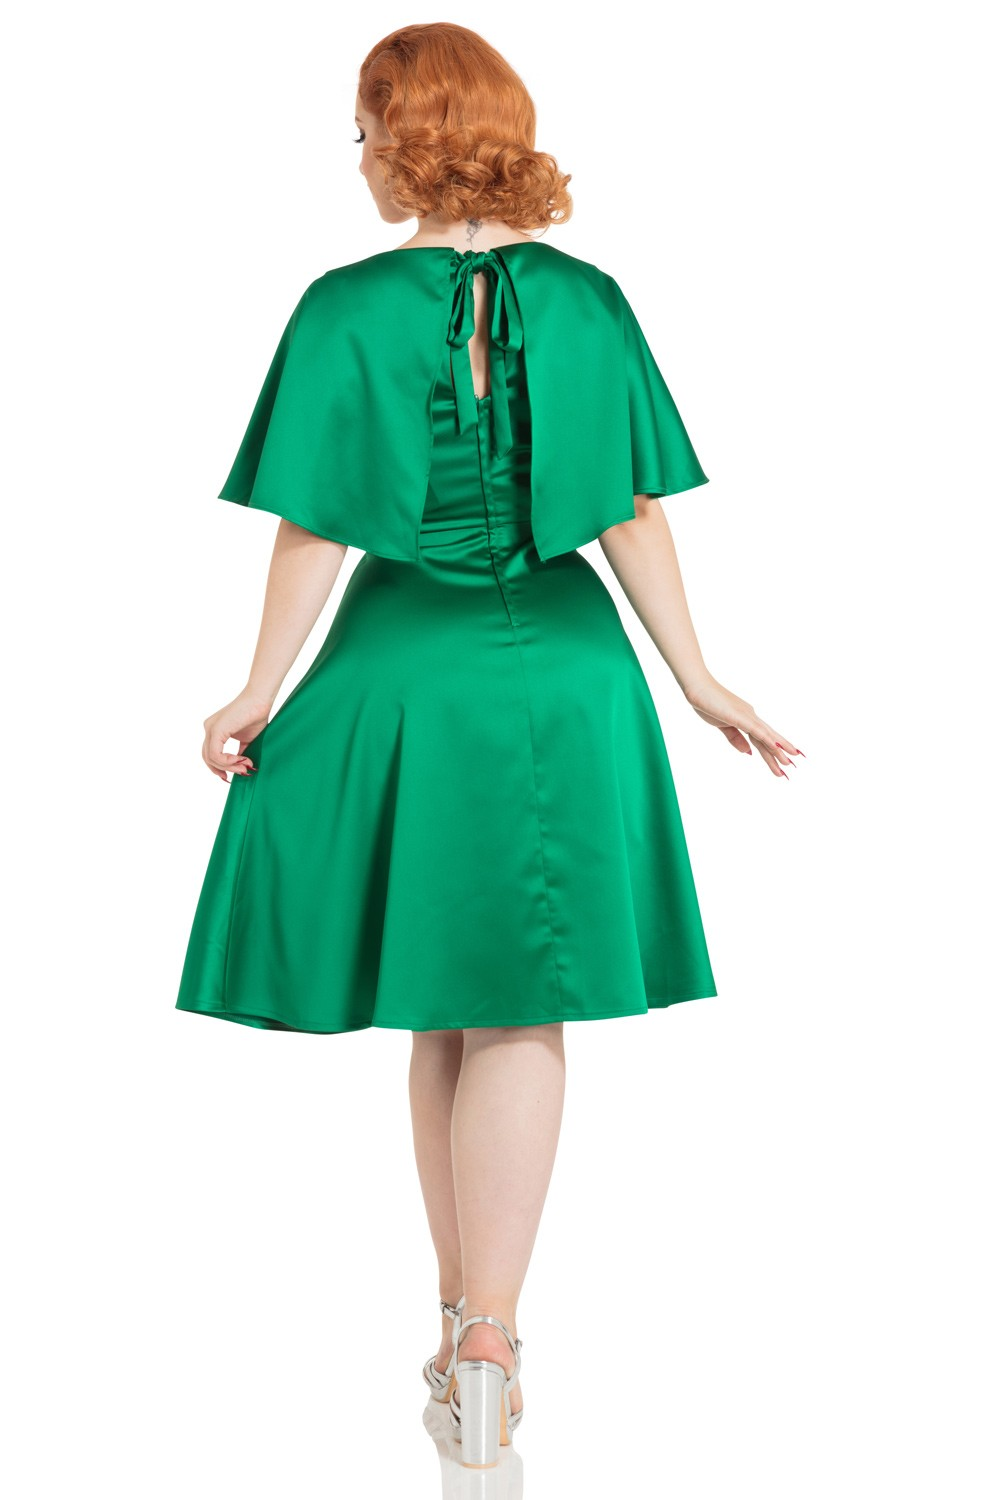 Vixen Mariah 1930s Cape Dress In Emerald